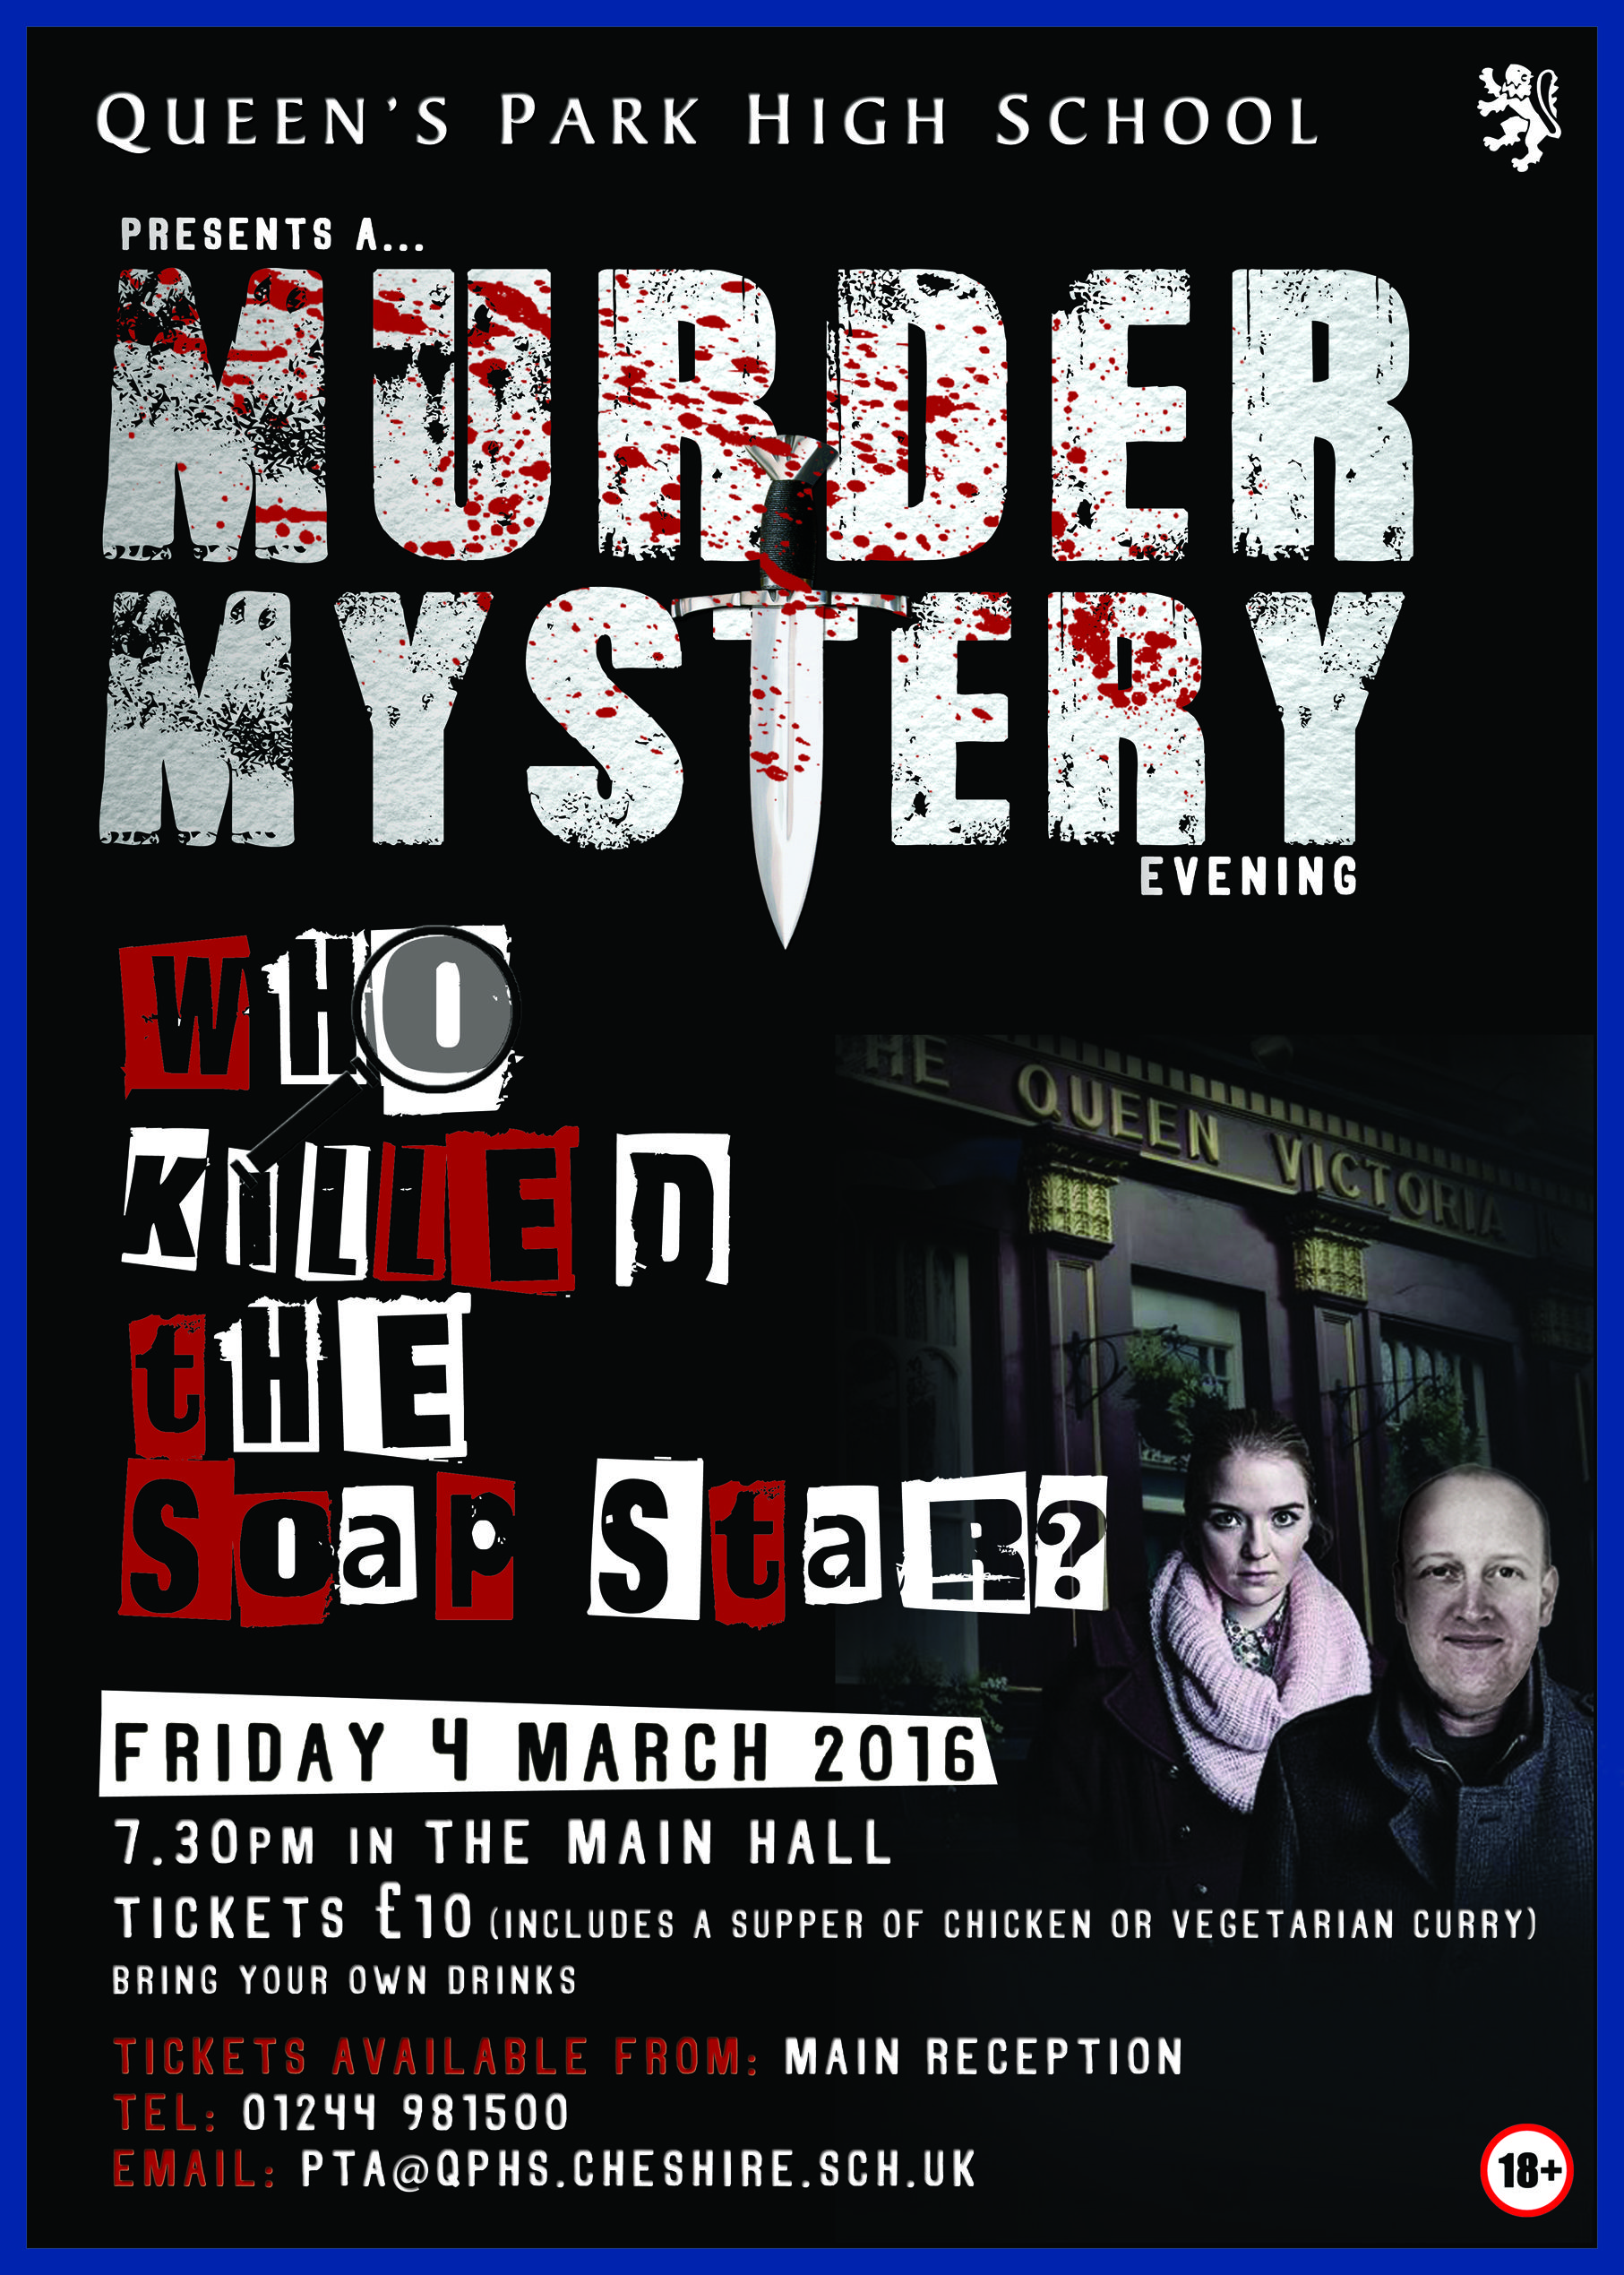 queen's park poster. murder mystery poster for fundraising